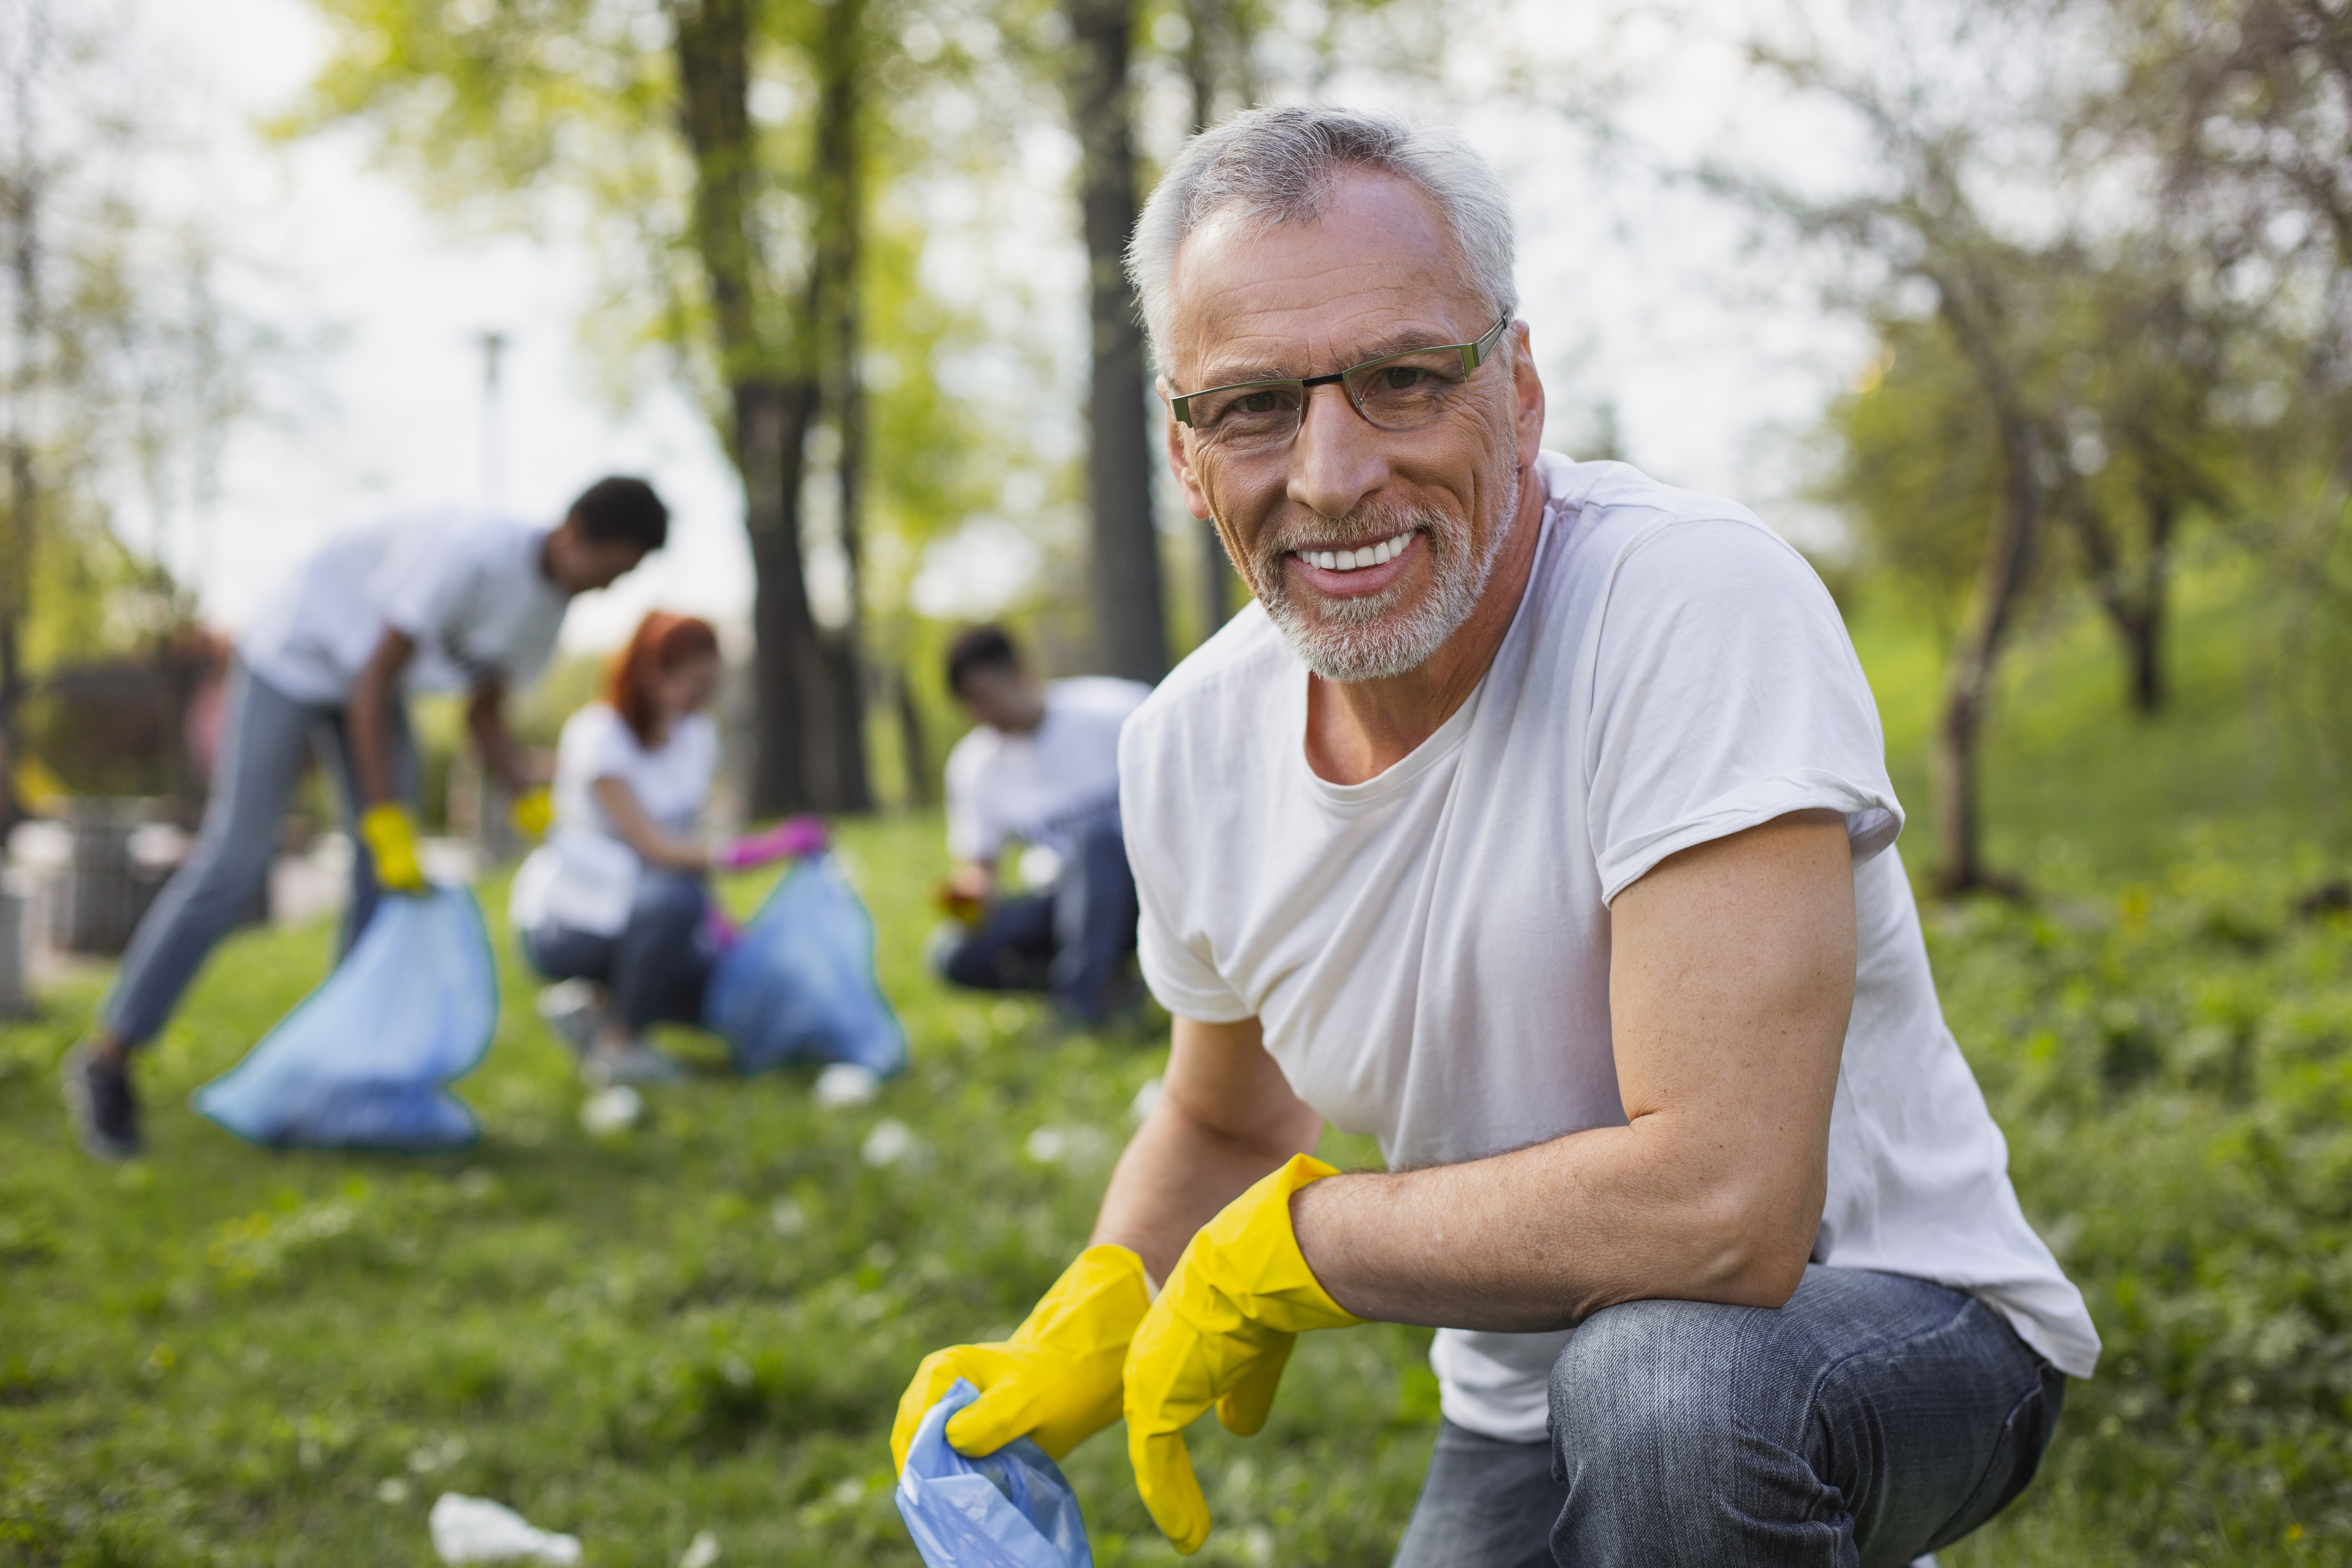 4 ways to give back when you retire